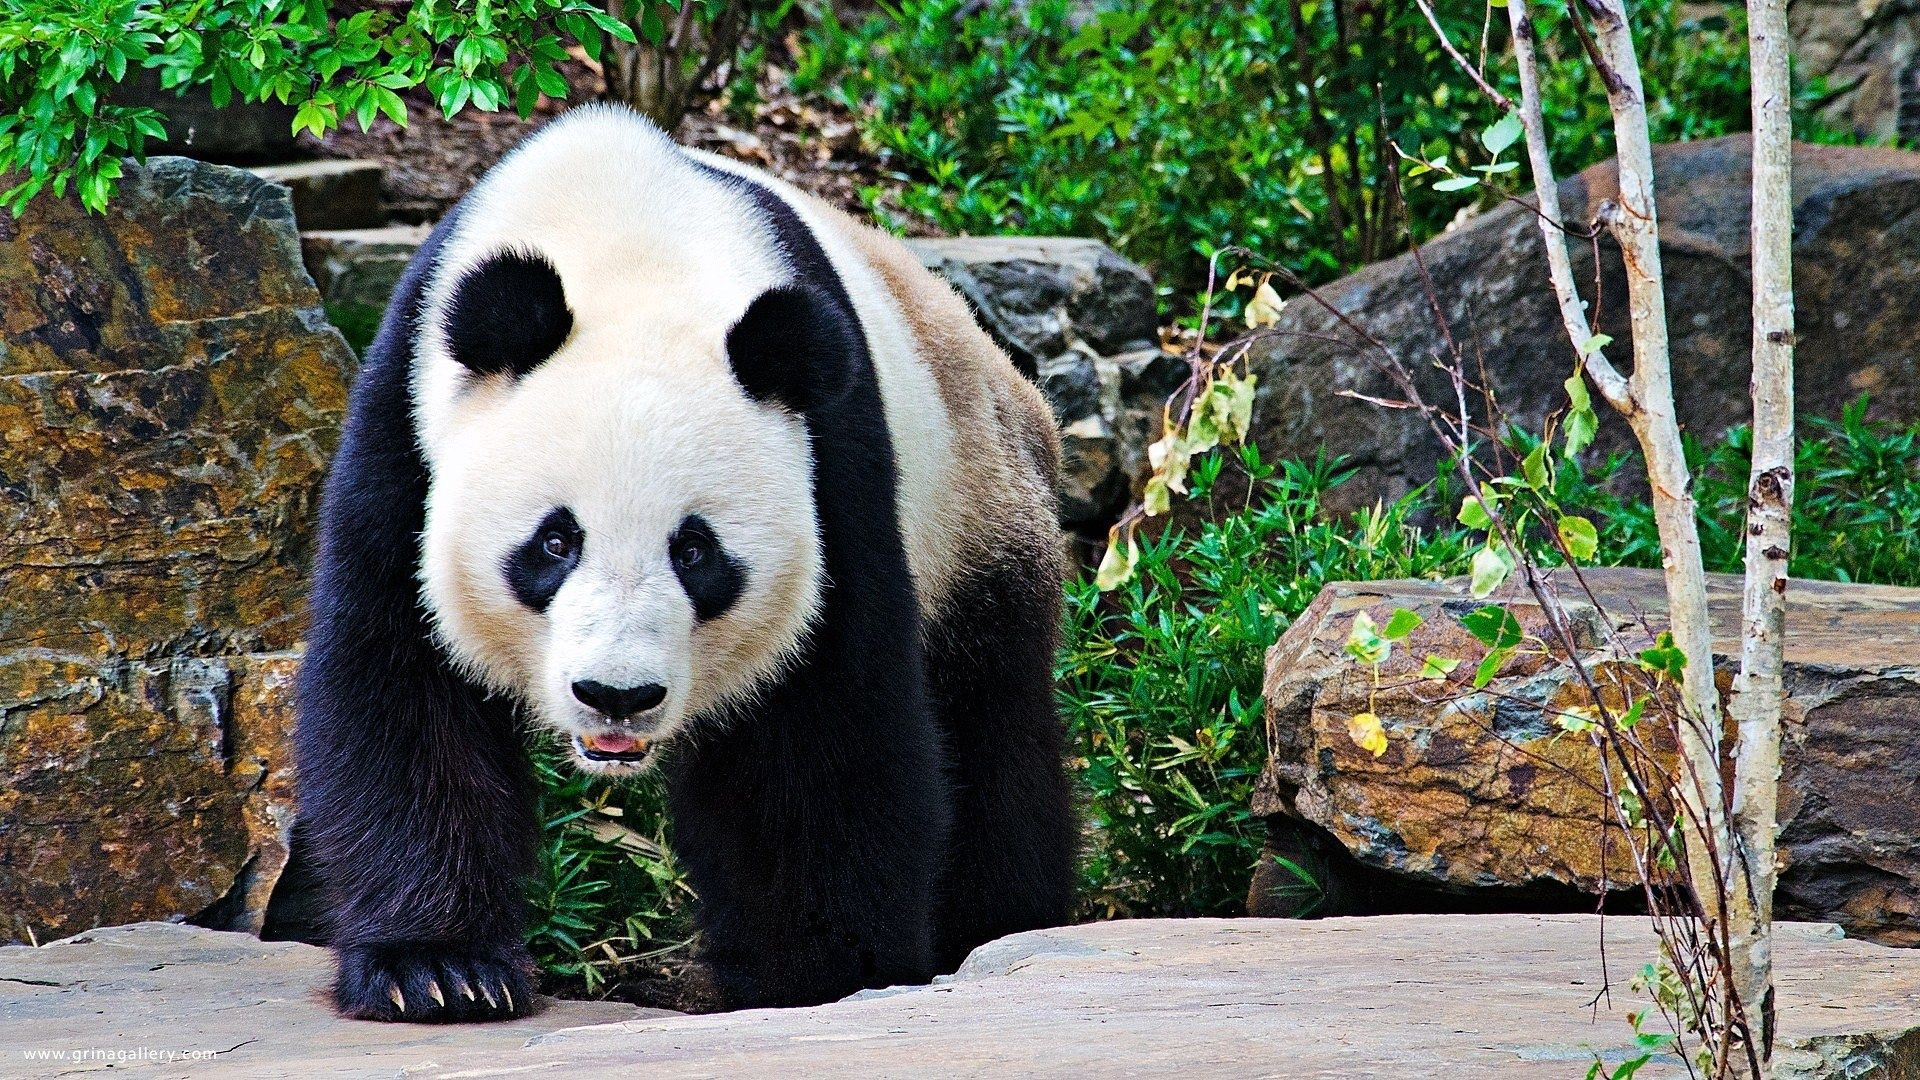 99487 download wallpaper Animals, Panda, Stones, Branches, Stroll, Large, Big screensavers and pictures for free